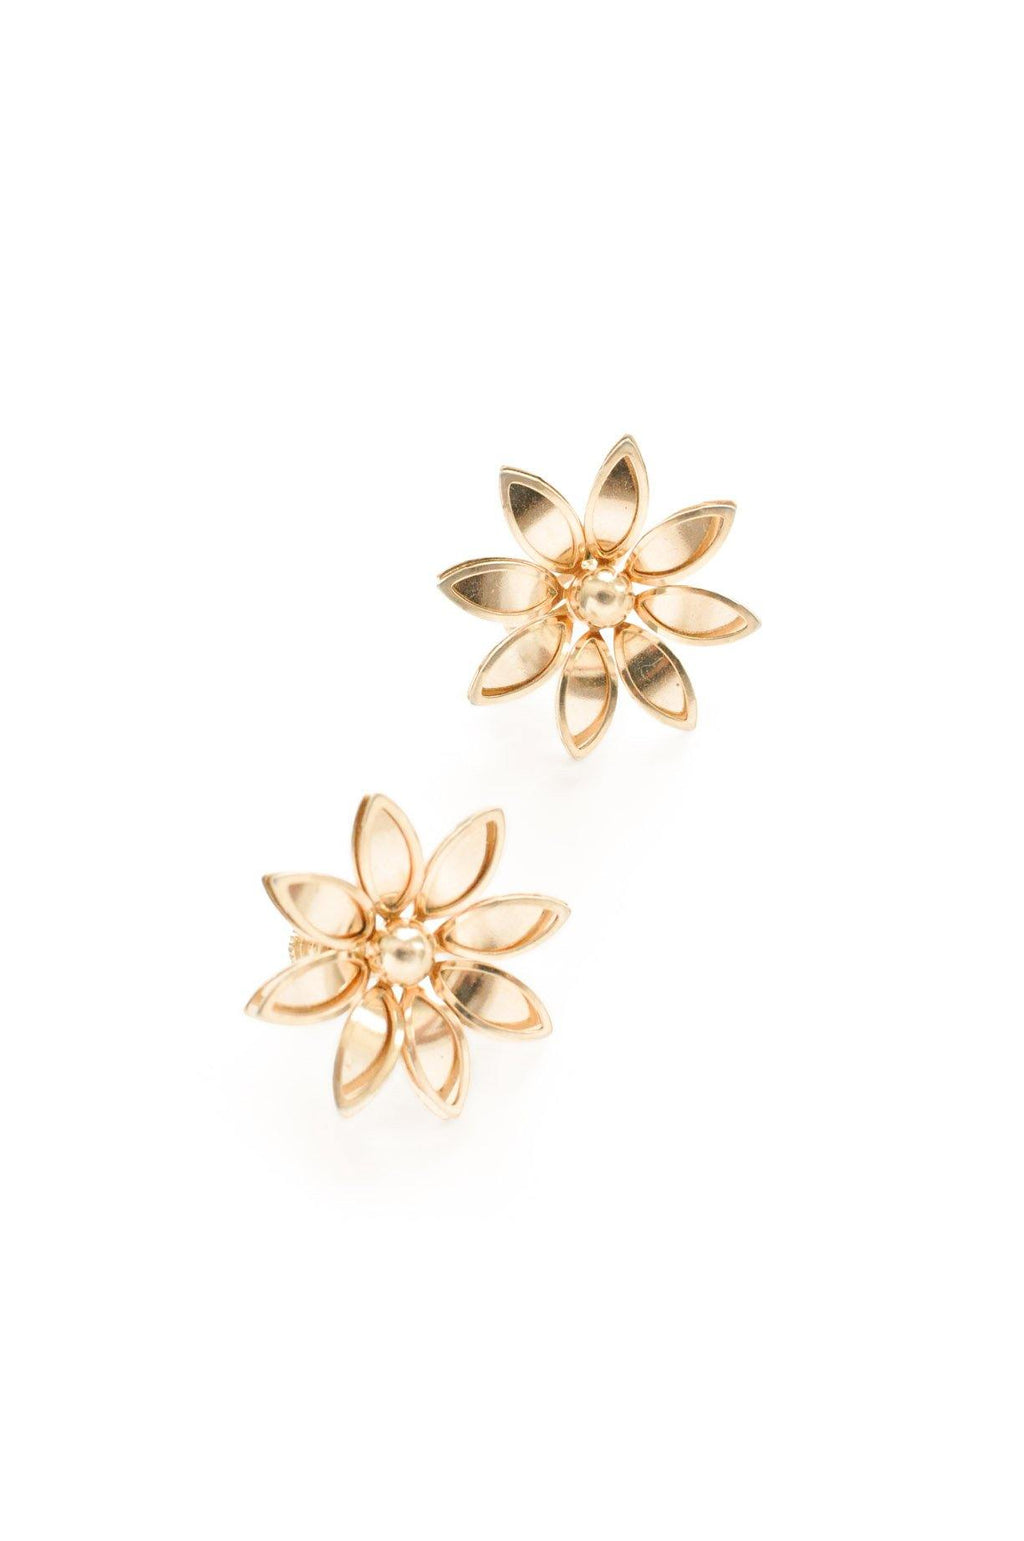 Gold Floral Clip-on Earrings